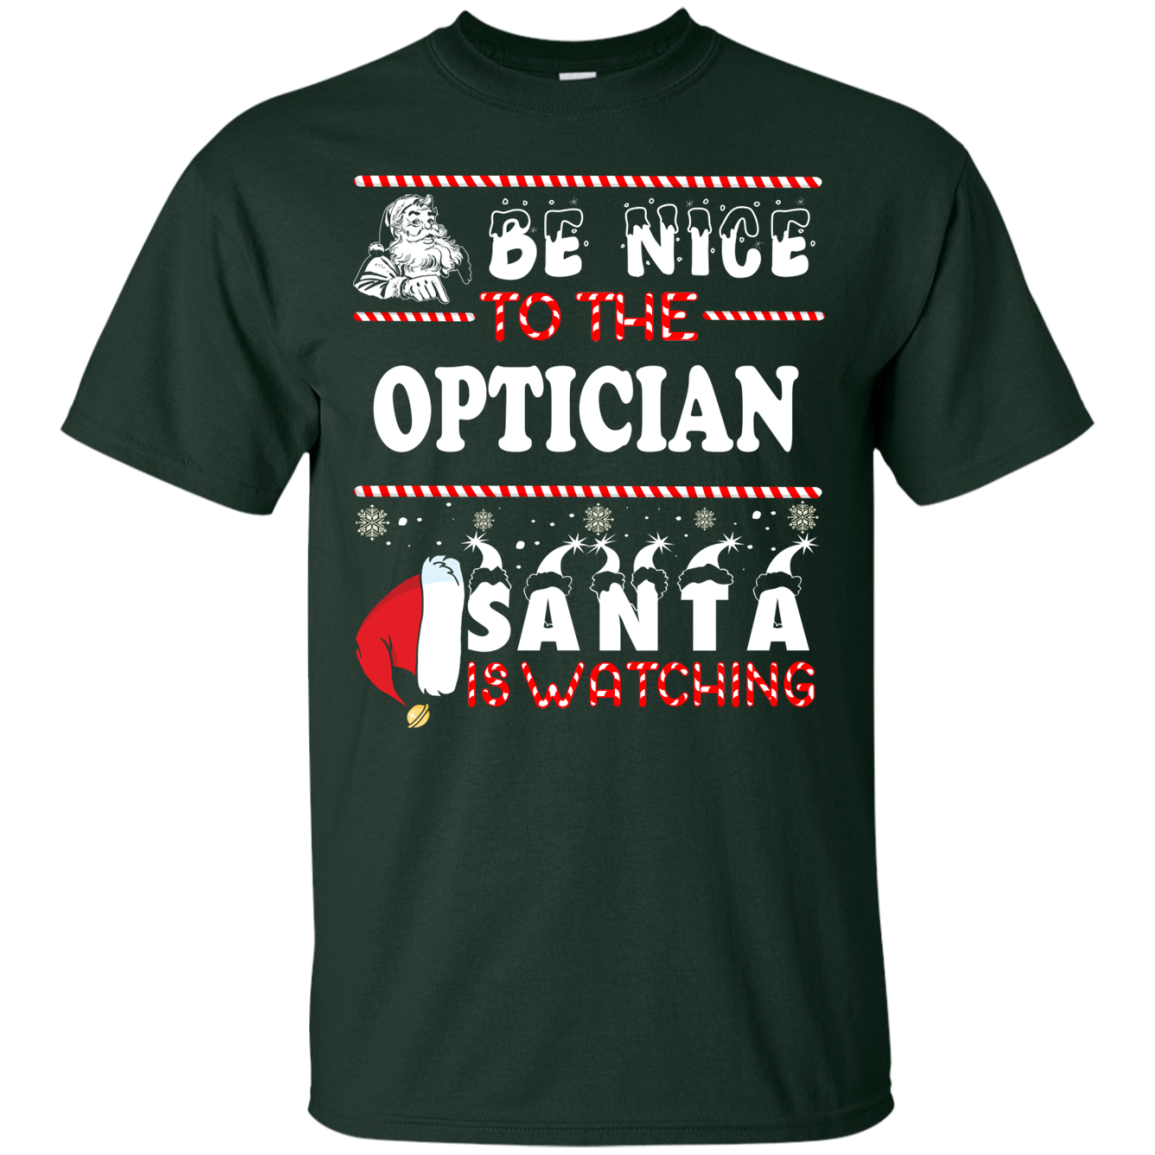 Be Nice To The Optician Santa Is Watching Sweatshirt, T Shirt